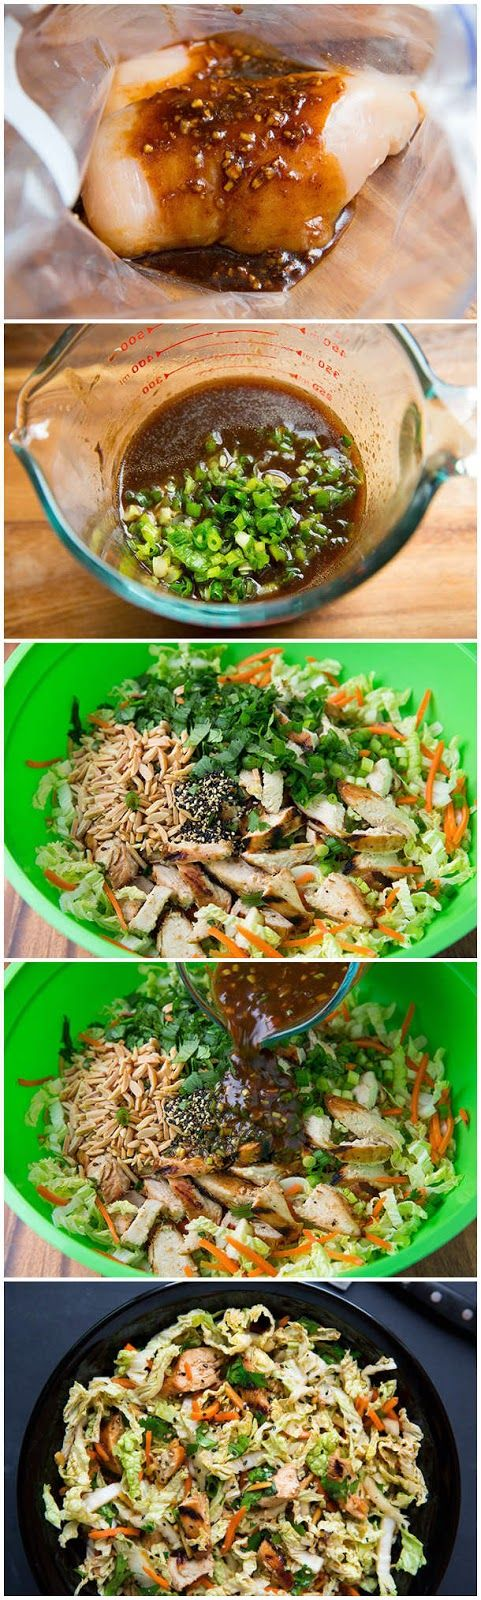 Ingredients   Dressing and Marinade  1/4 c low-sodium soy sauce  2 Tbsp finely minced ginger  3 Tbsp canola oil  2 Tbsp hoisin sauce  1 Tb...